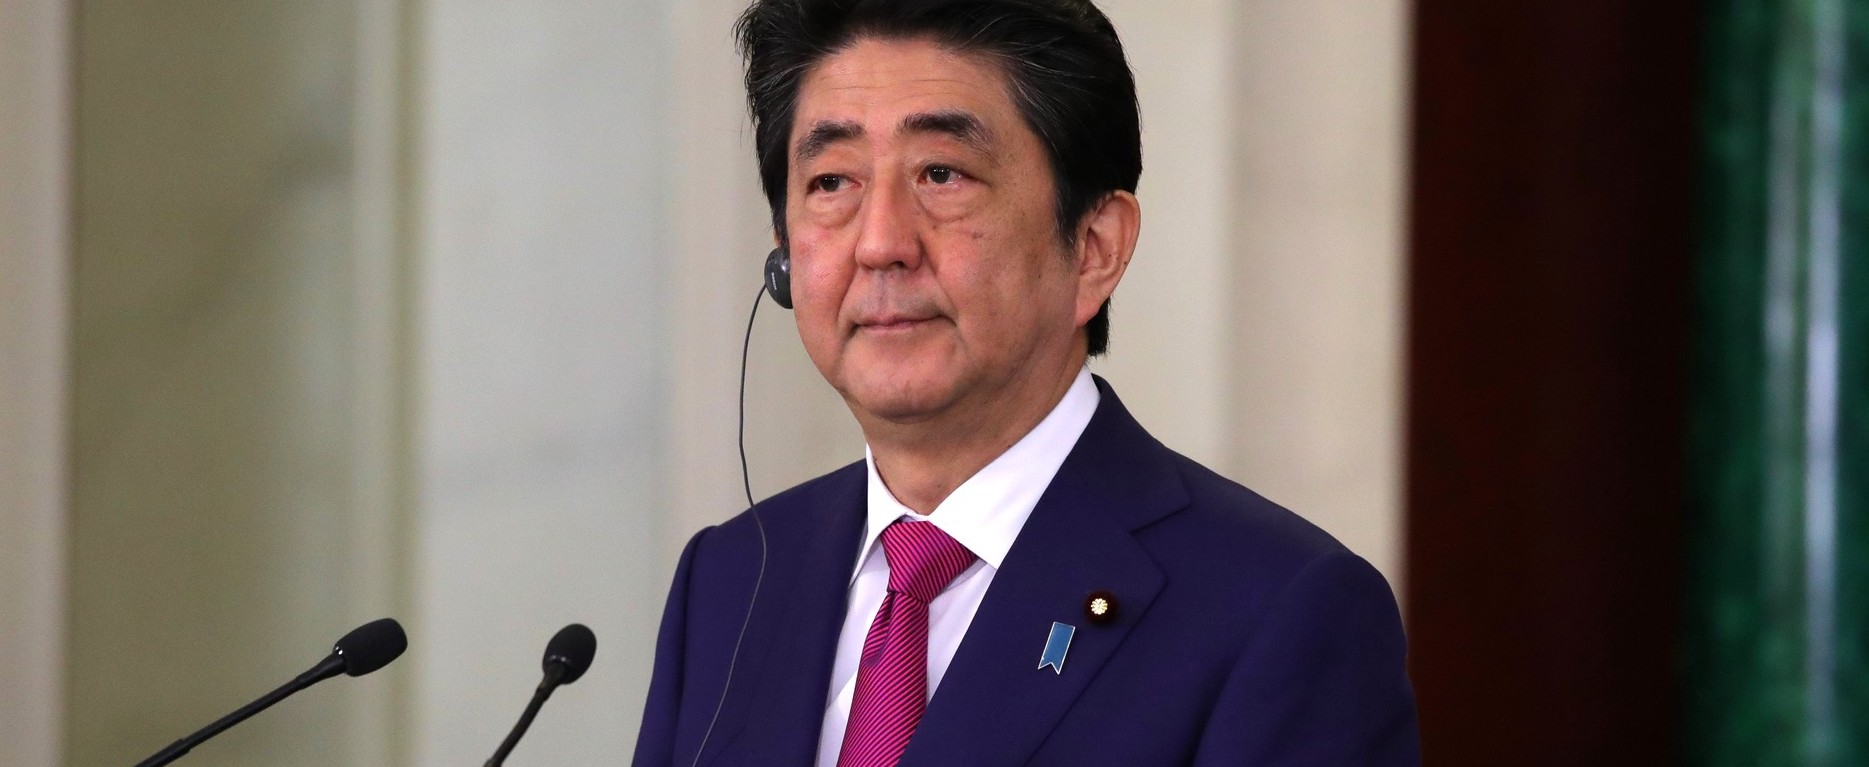 Japan's Shinzo Abe (Photo: Kremlin.ru)